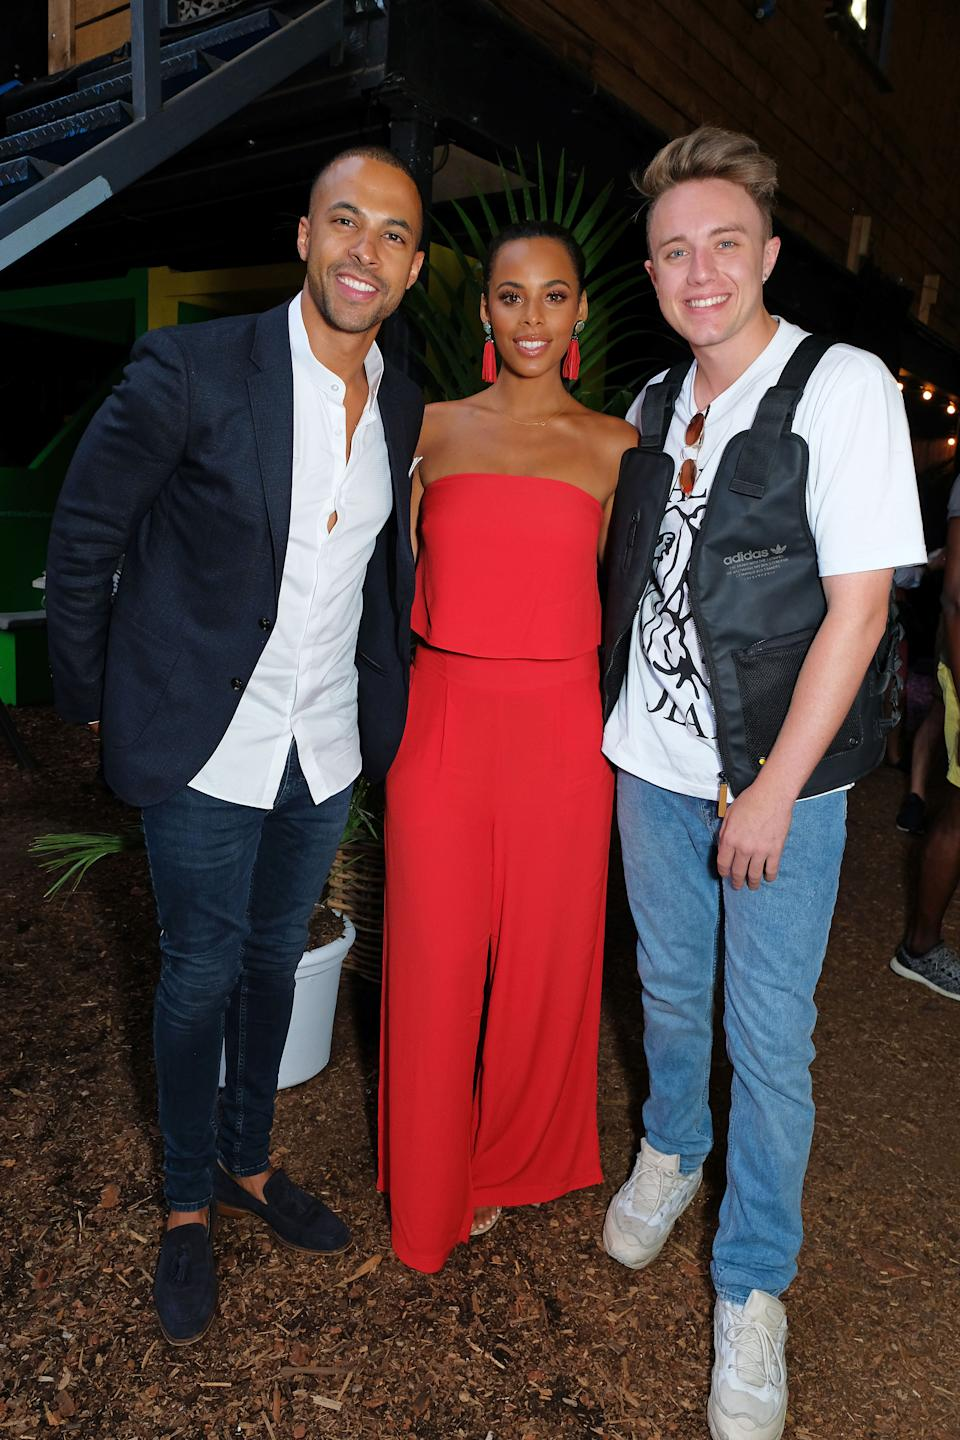 Marvin Humes, Rochelle Humes and Roman Kemp pictured at the VIP launch of Just Eat Food Fest: Desert Island Dishes in Red Market, London. (Photo by David M Benett/Dave Benett/Getty Images For Just Eat)